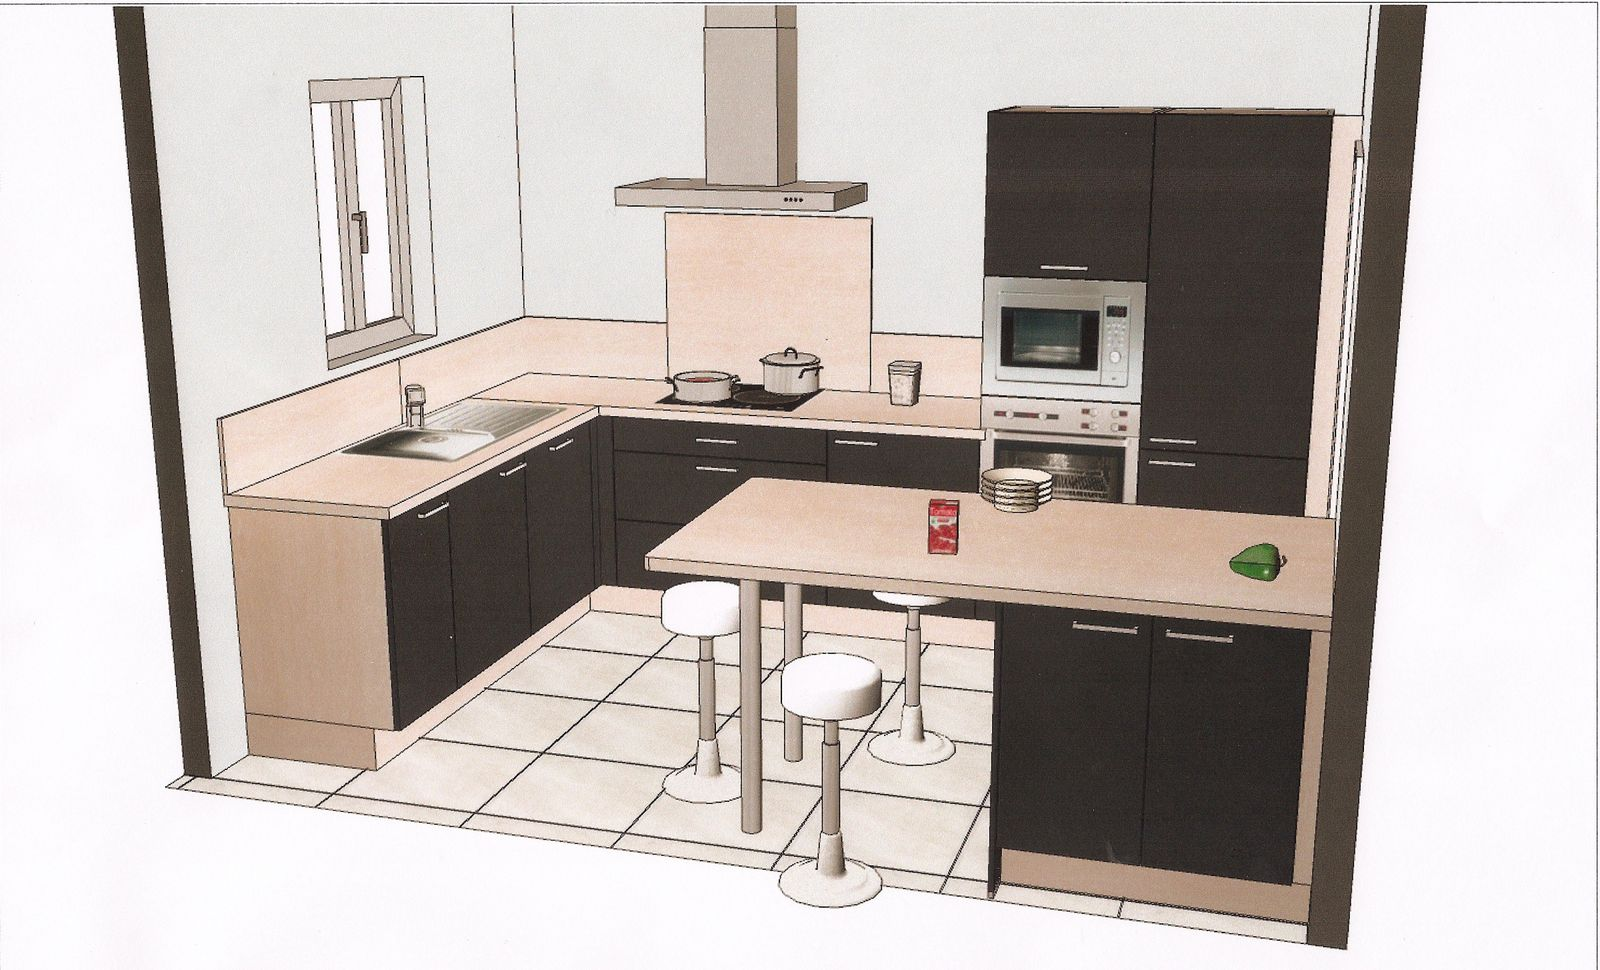 Plan petite cuisine amenagee maison design for Plan de cuisine amenagee